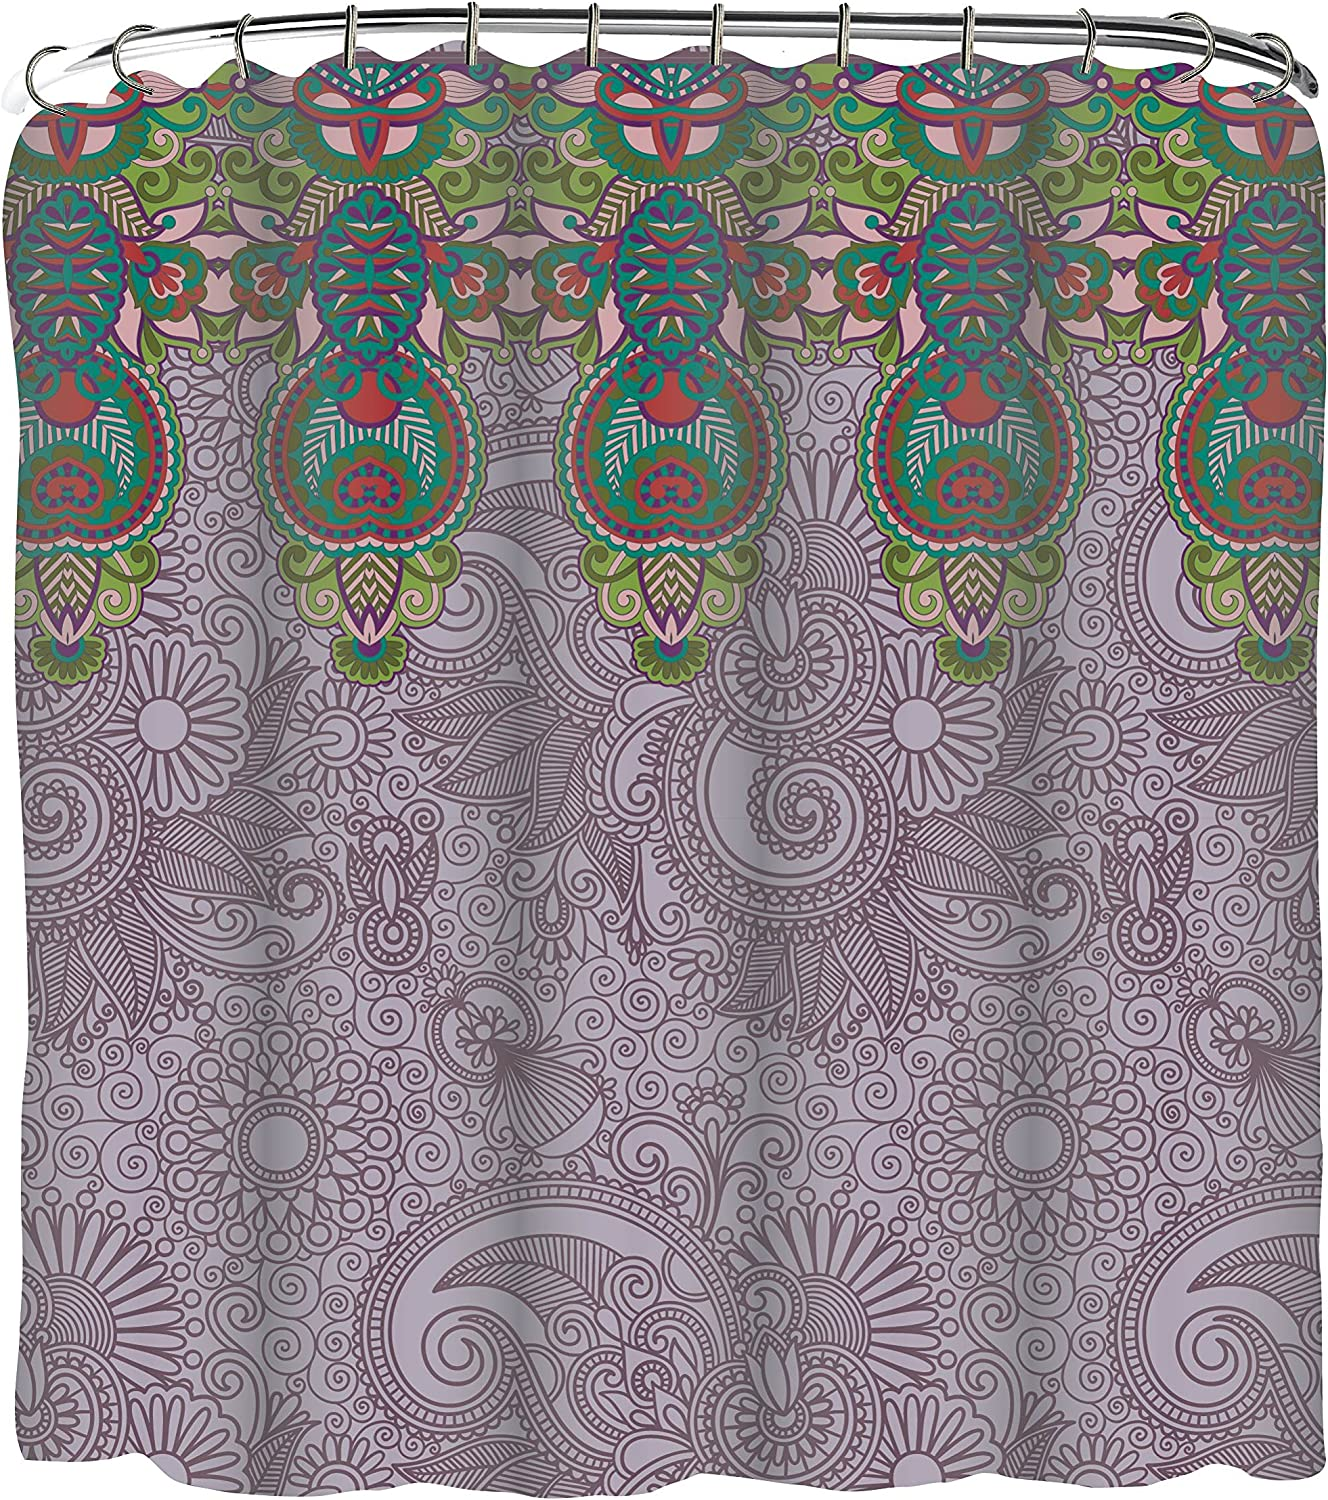 Indecor Home Fabric Lavender Paisleys and Medallions Shower Curtain and Roller Hook Set